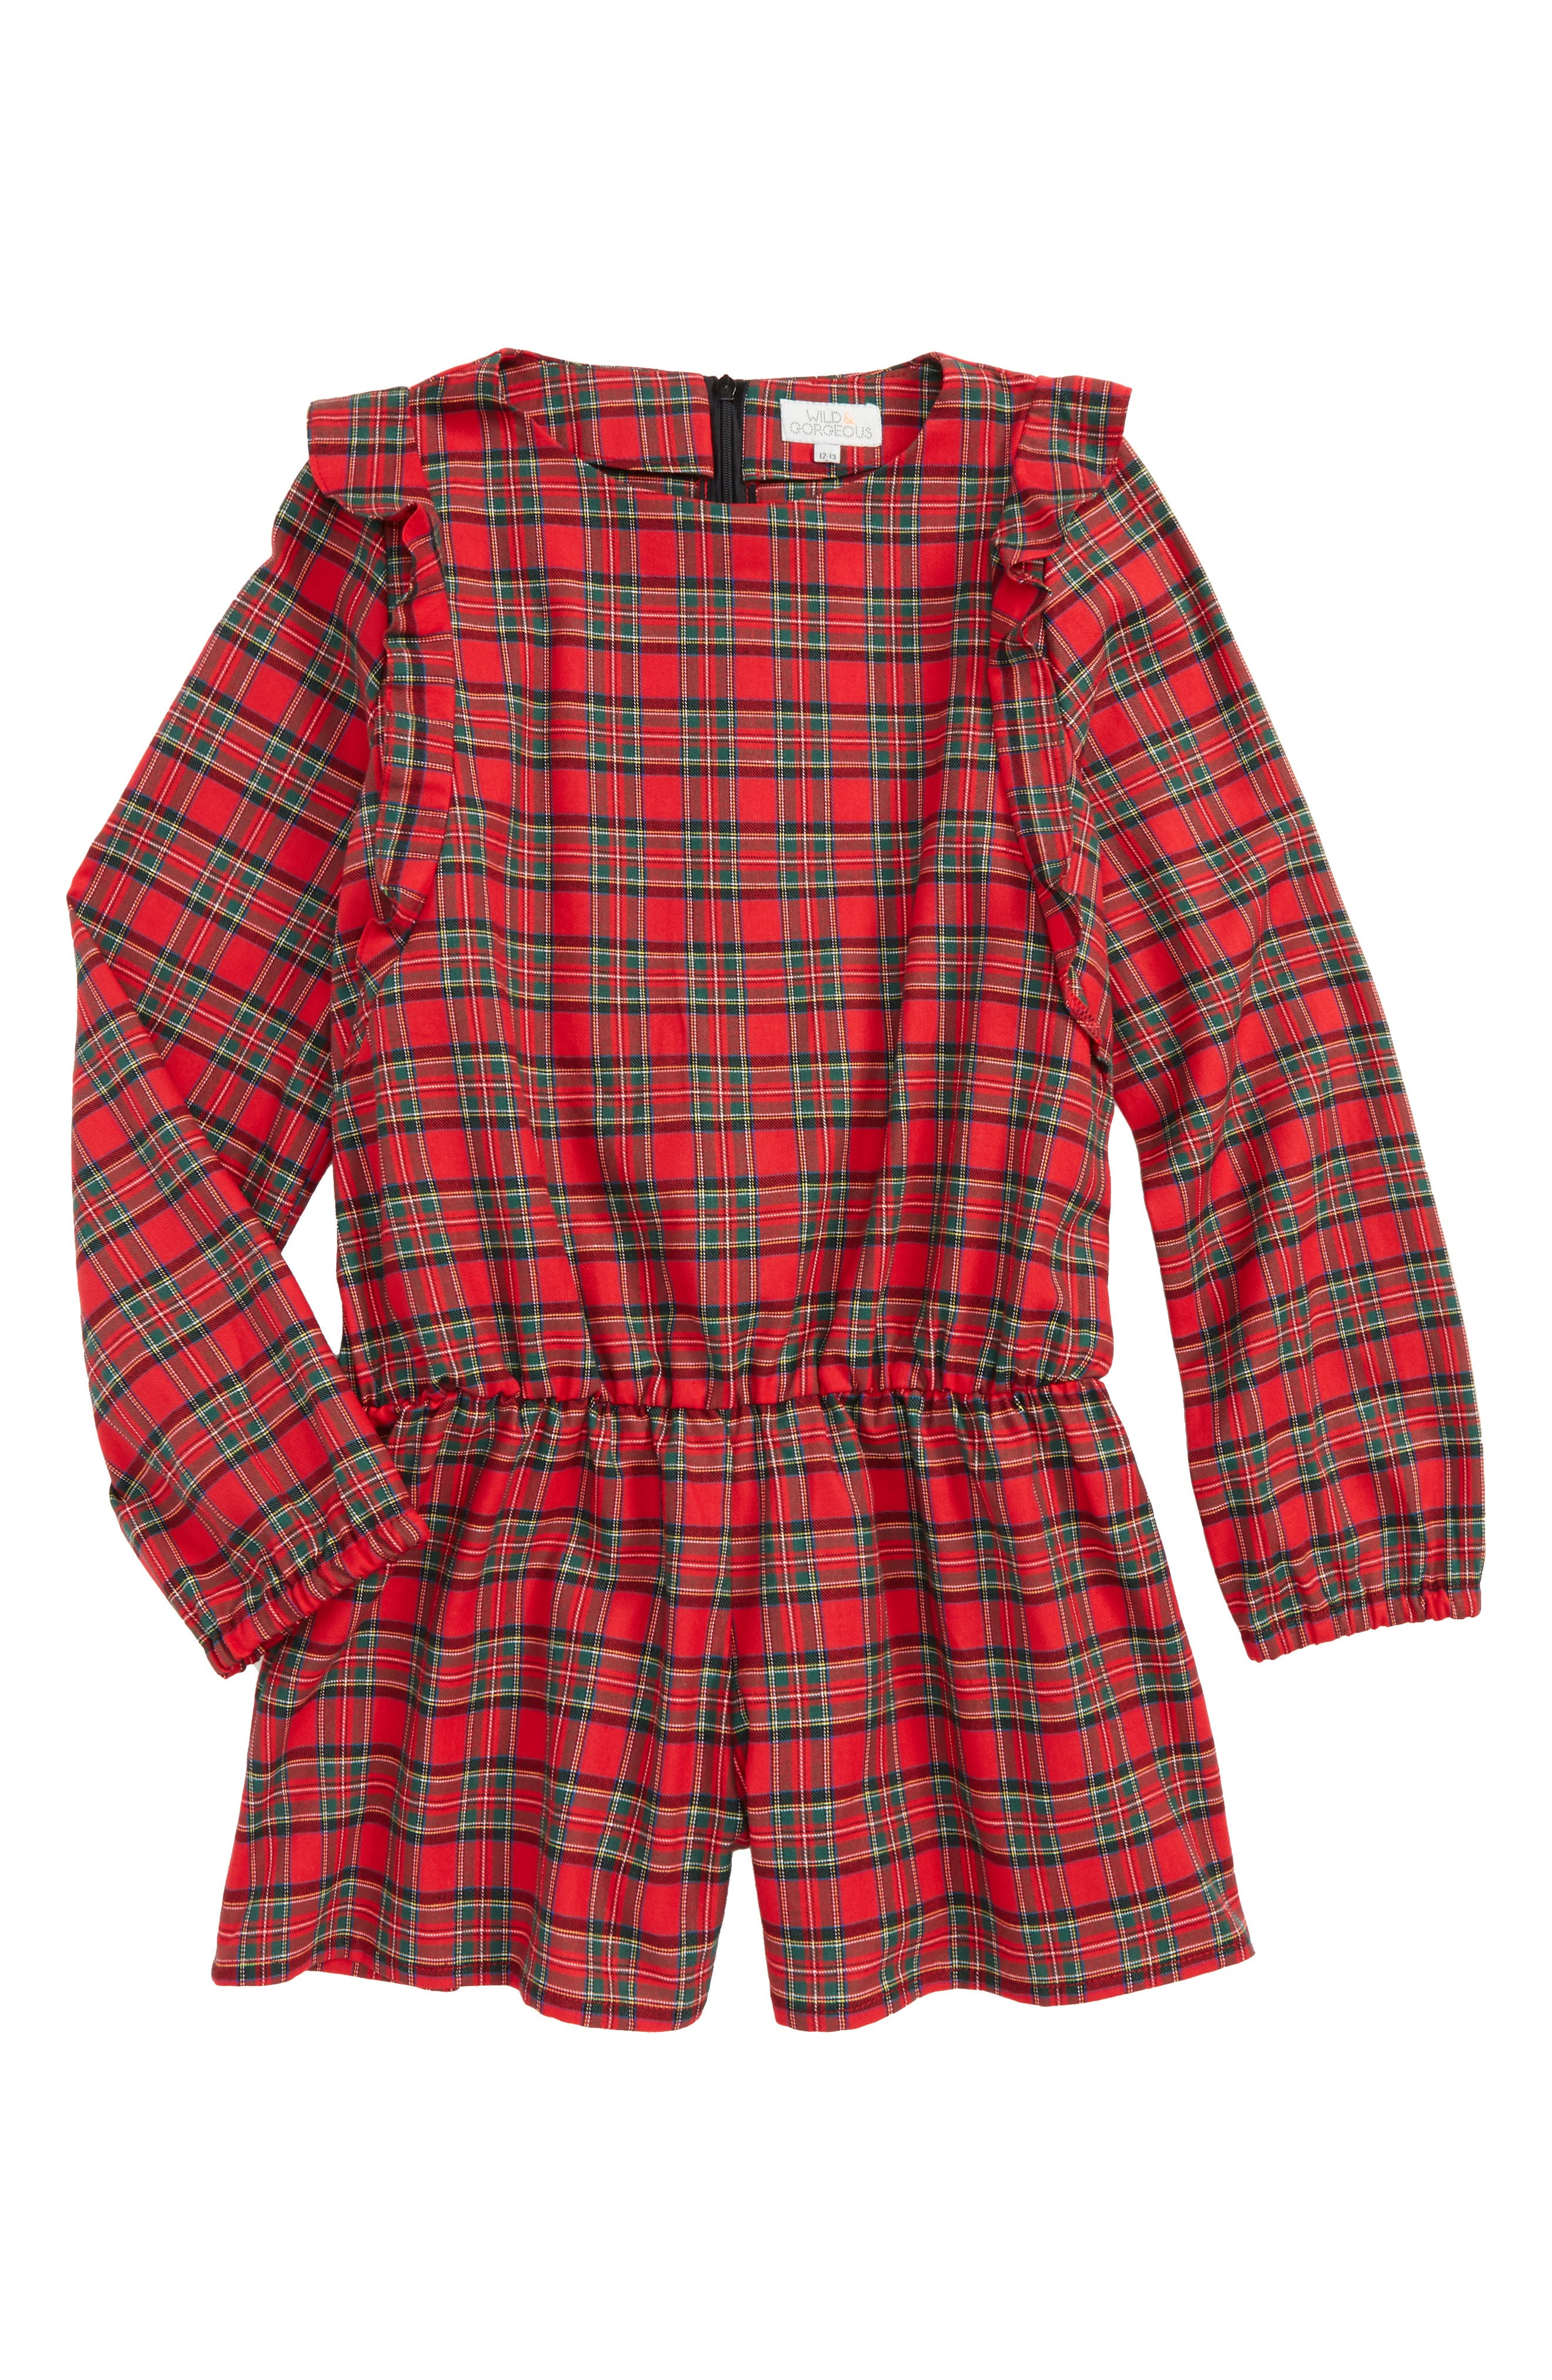 Pam Plaid Romper,                         Main,                         color, Red